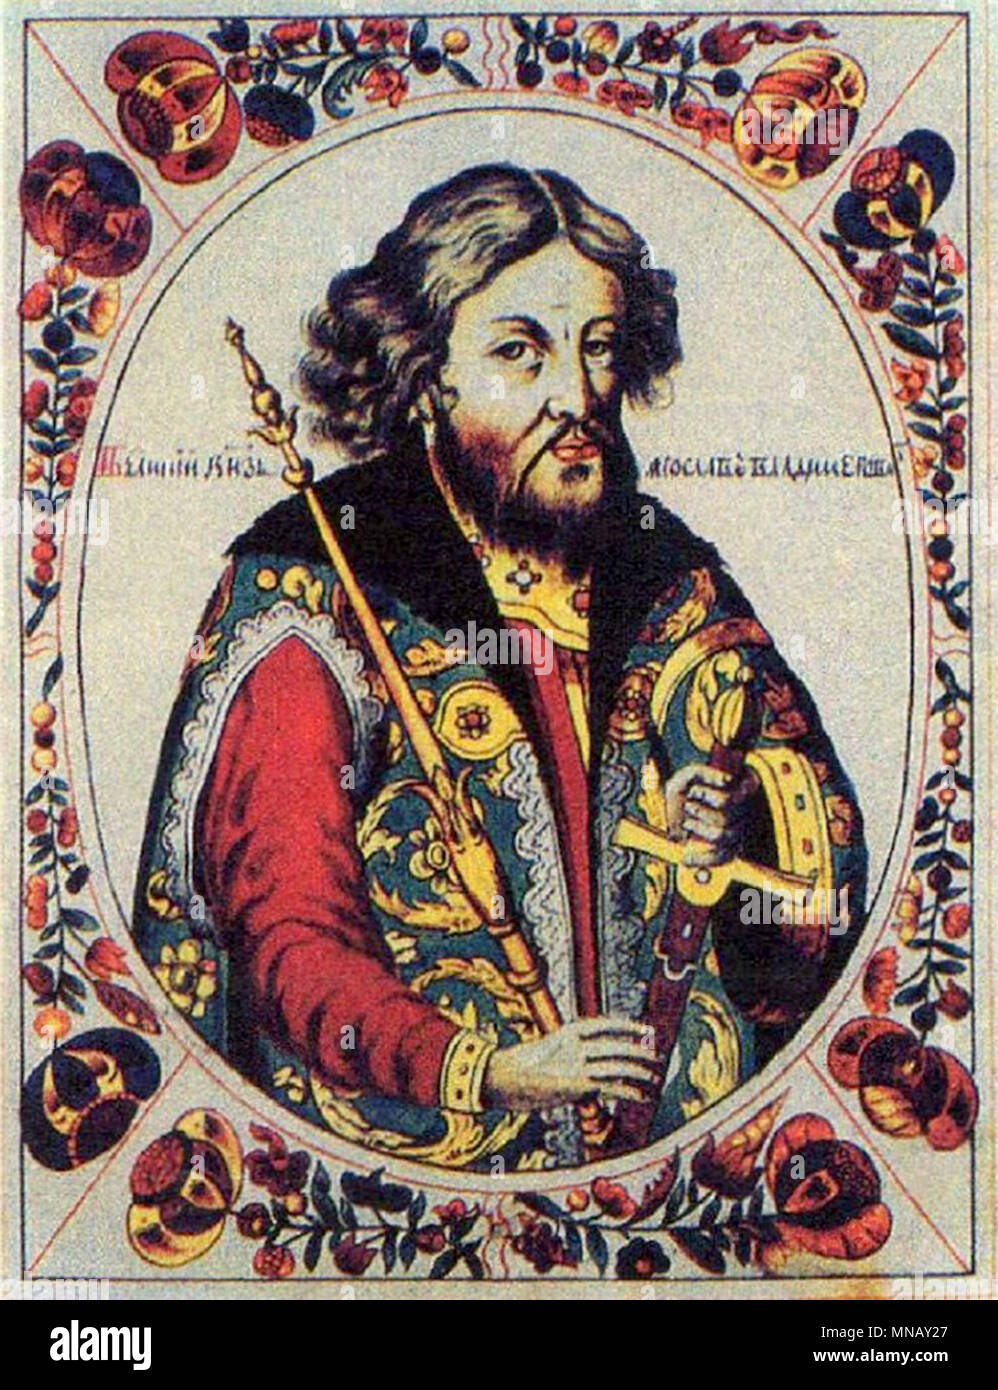 Yaroslav the Wise, Yaroslav I, (978 – 1054)